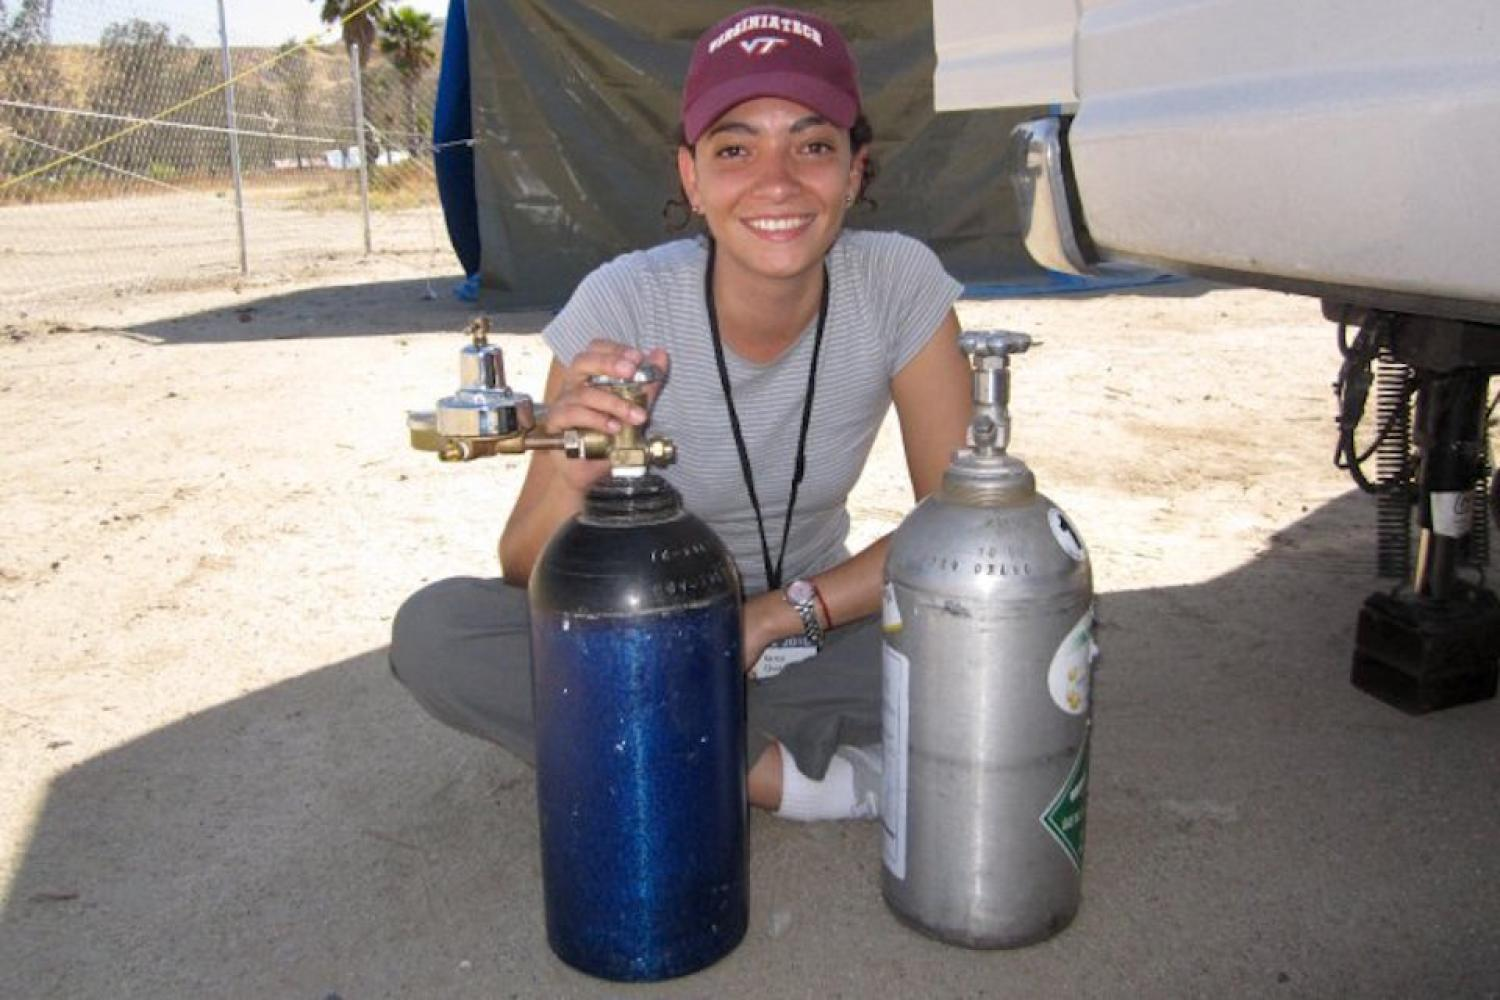 Dr. Vance with gas cylinders in Tijuana, Mexico for the Cal-Mex field campaign